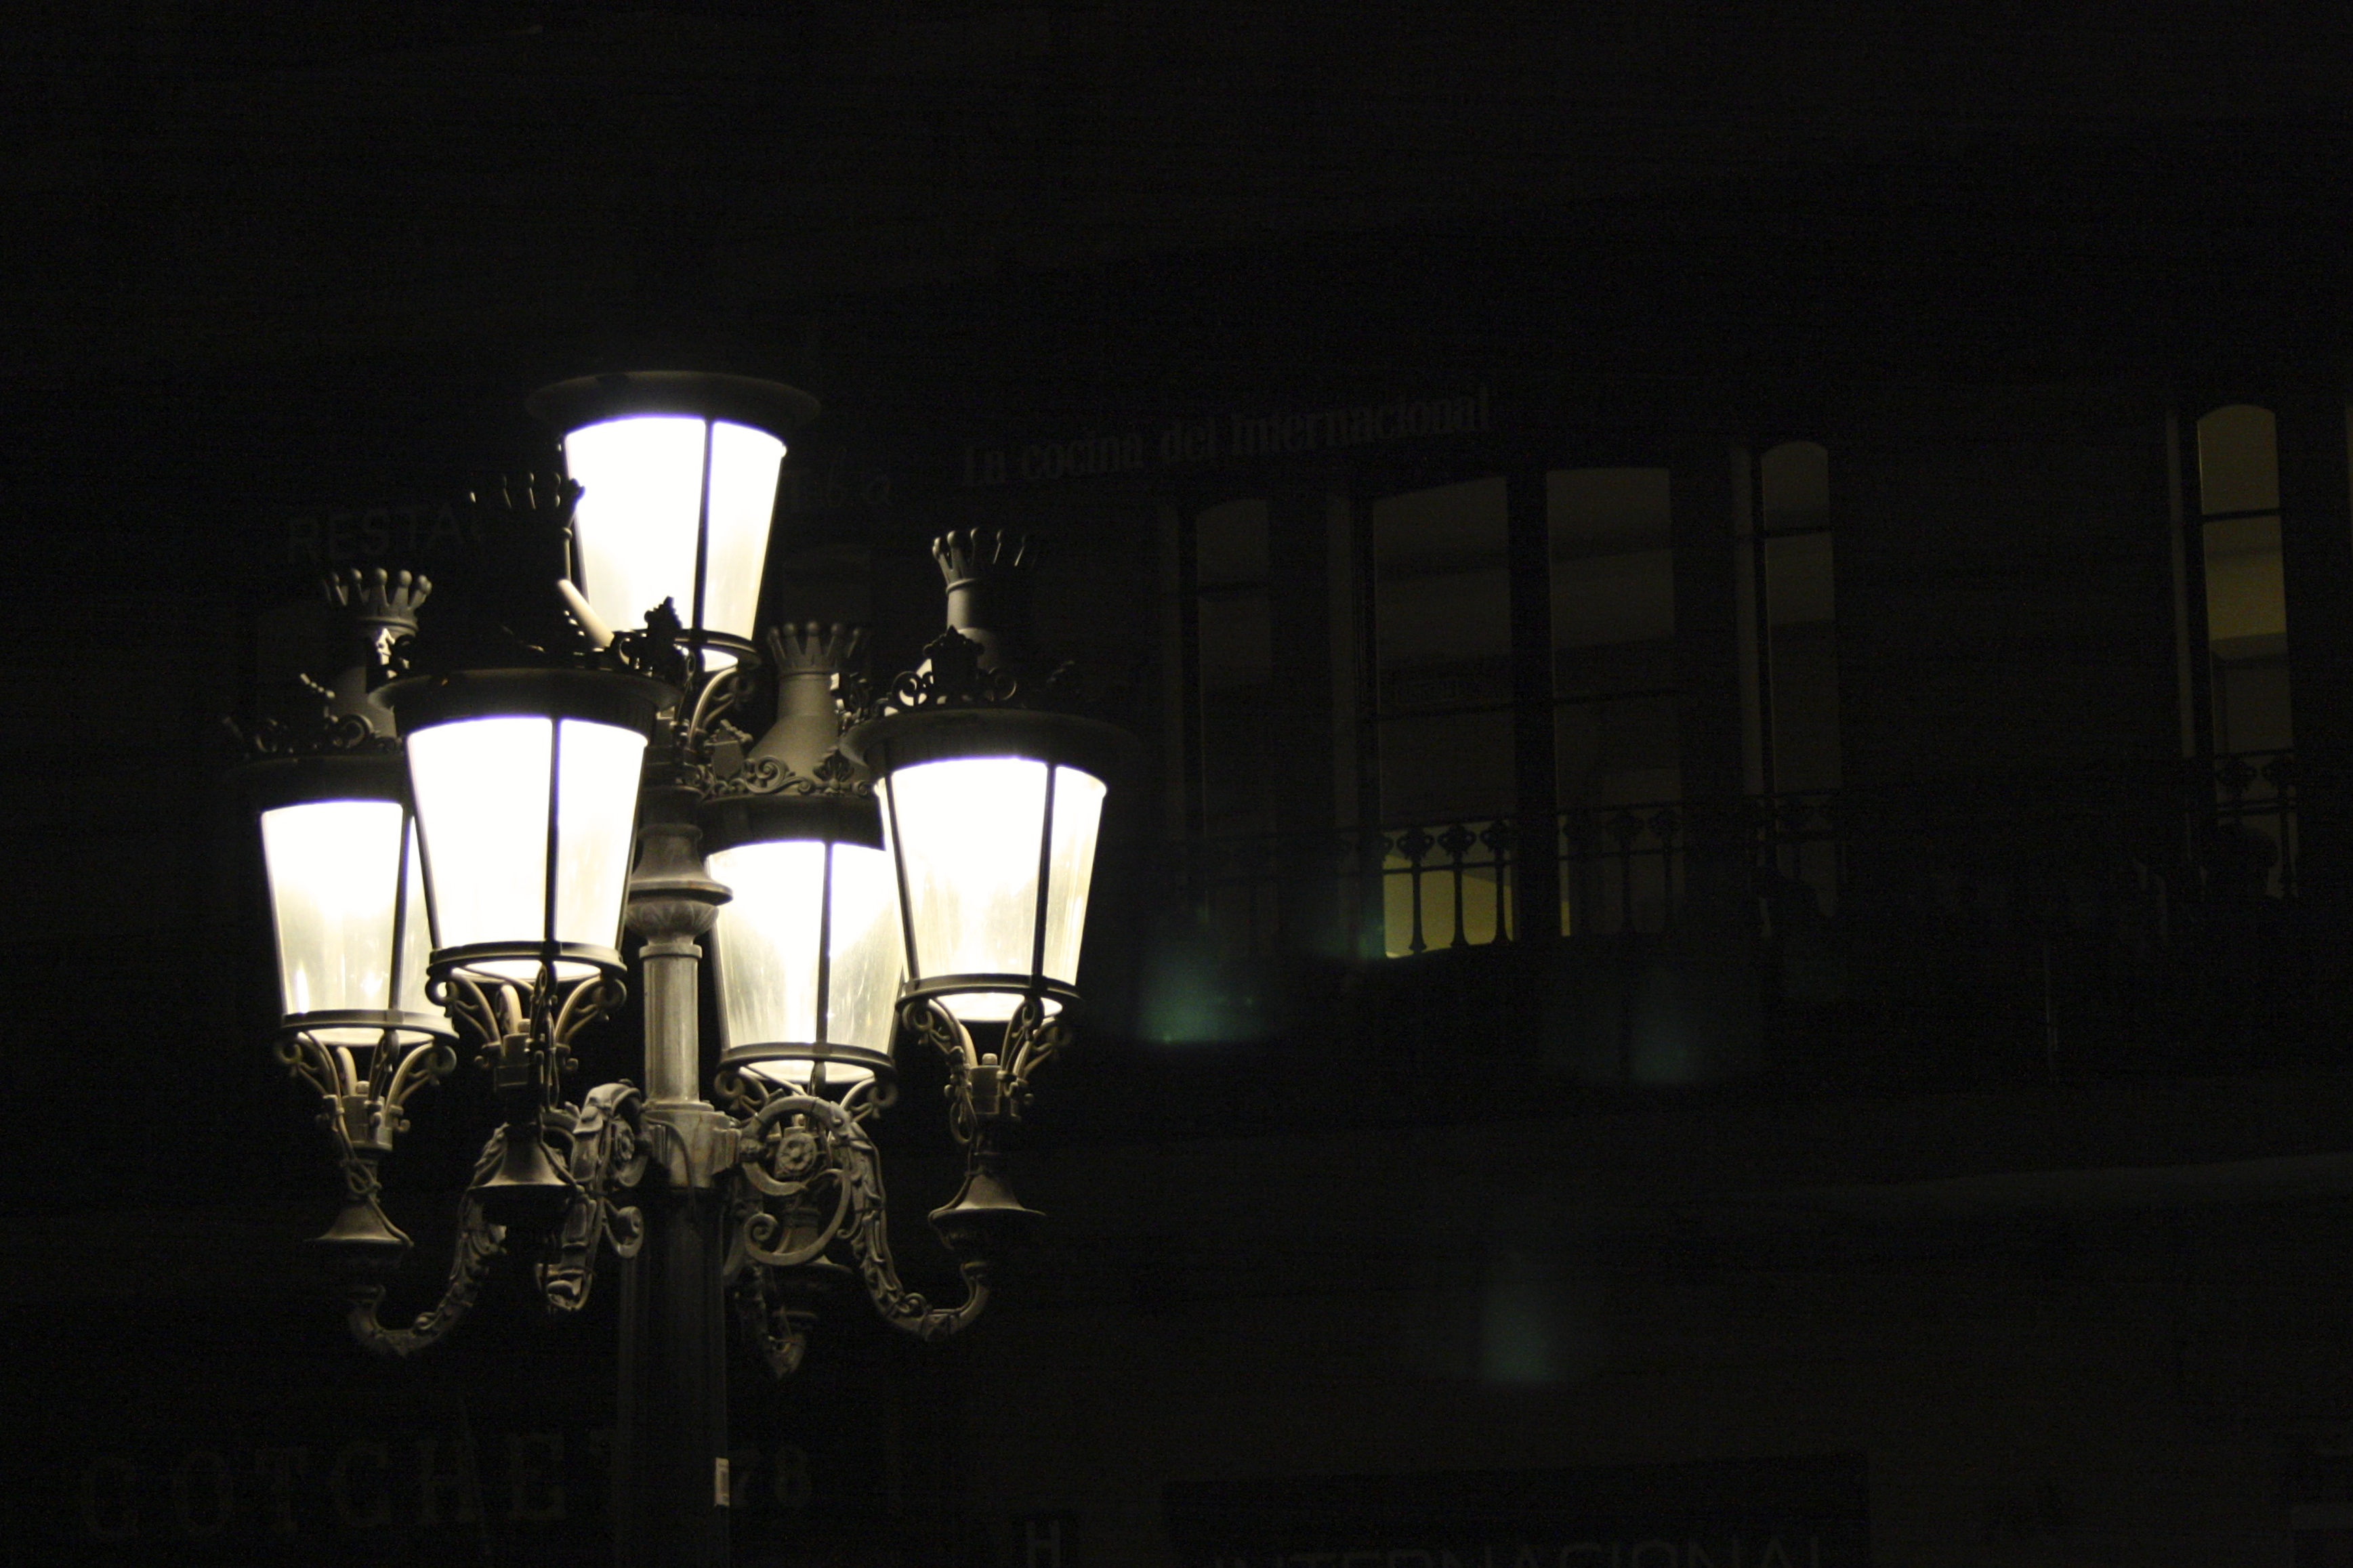 Decorative Street Lamp at Night, Black, Black and white, Black background, Decorative, HQ Photo